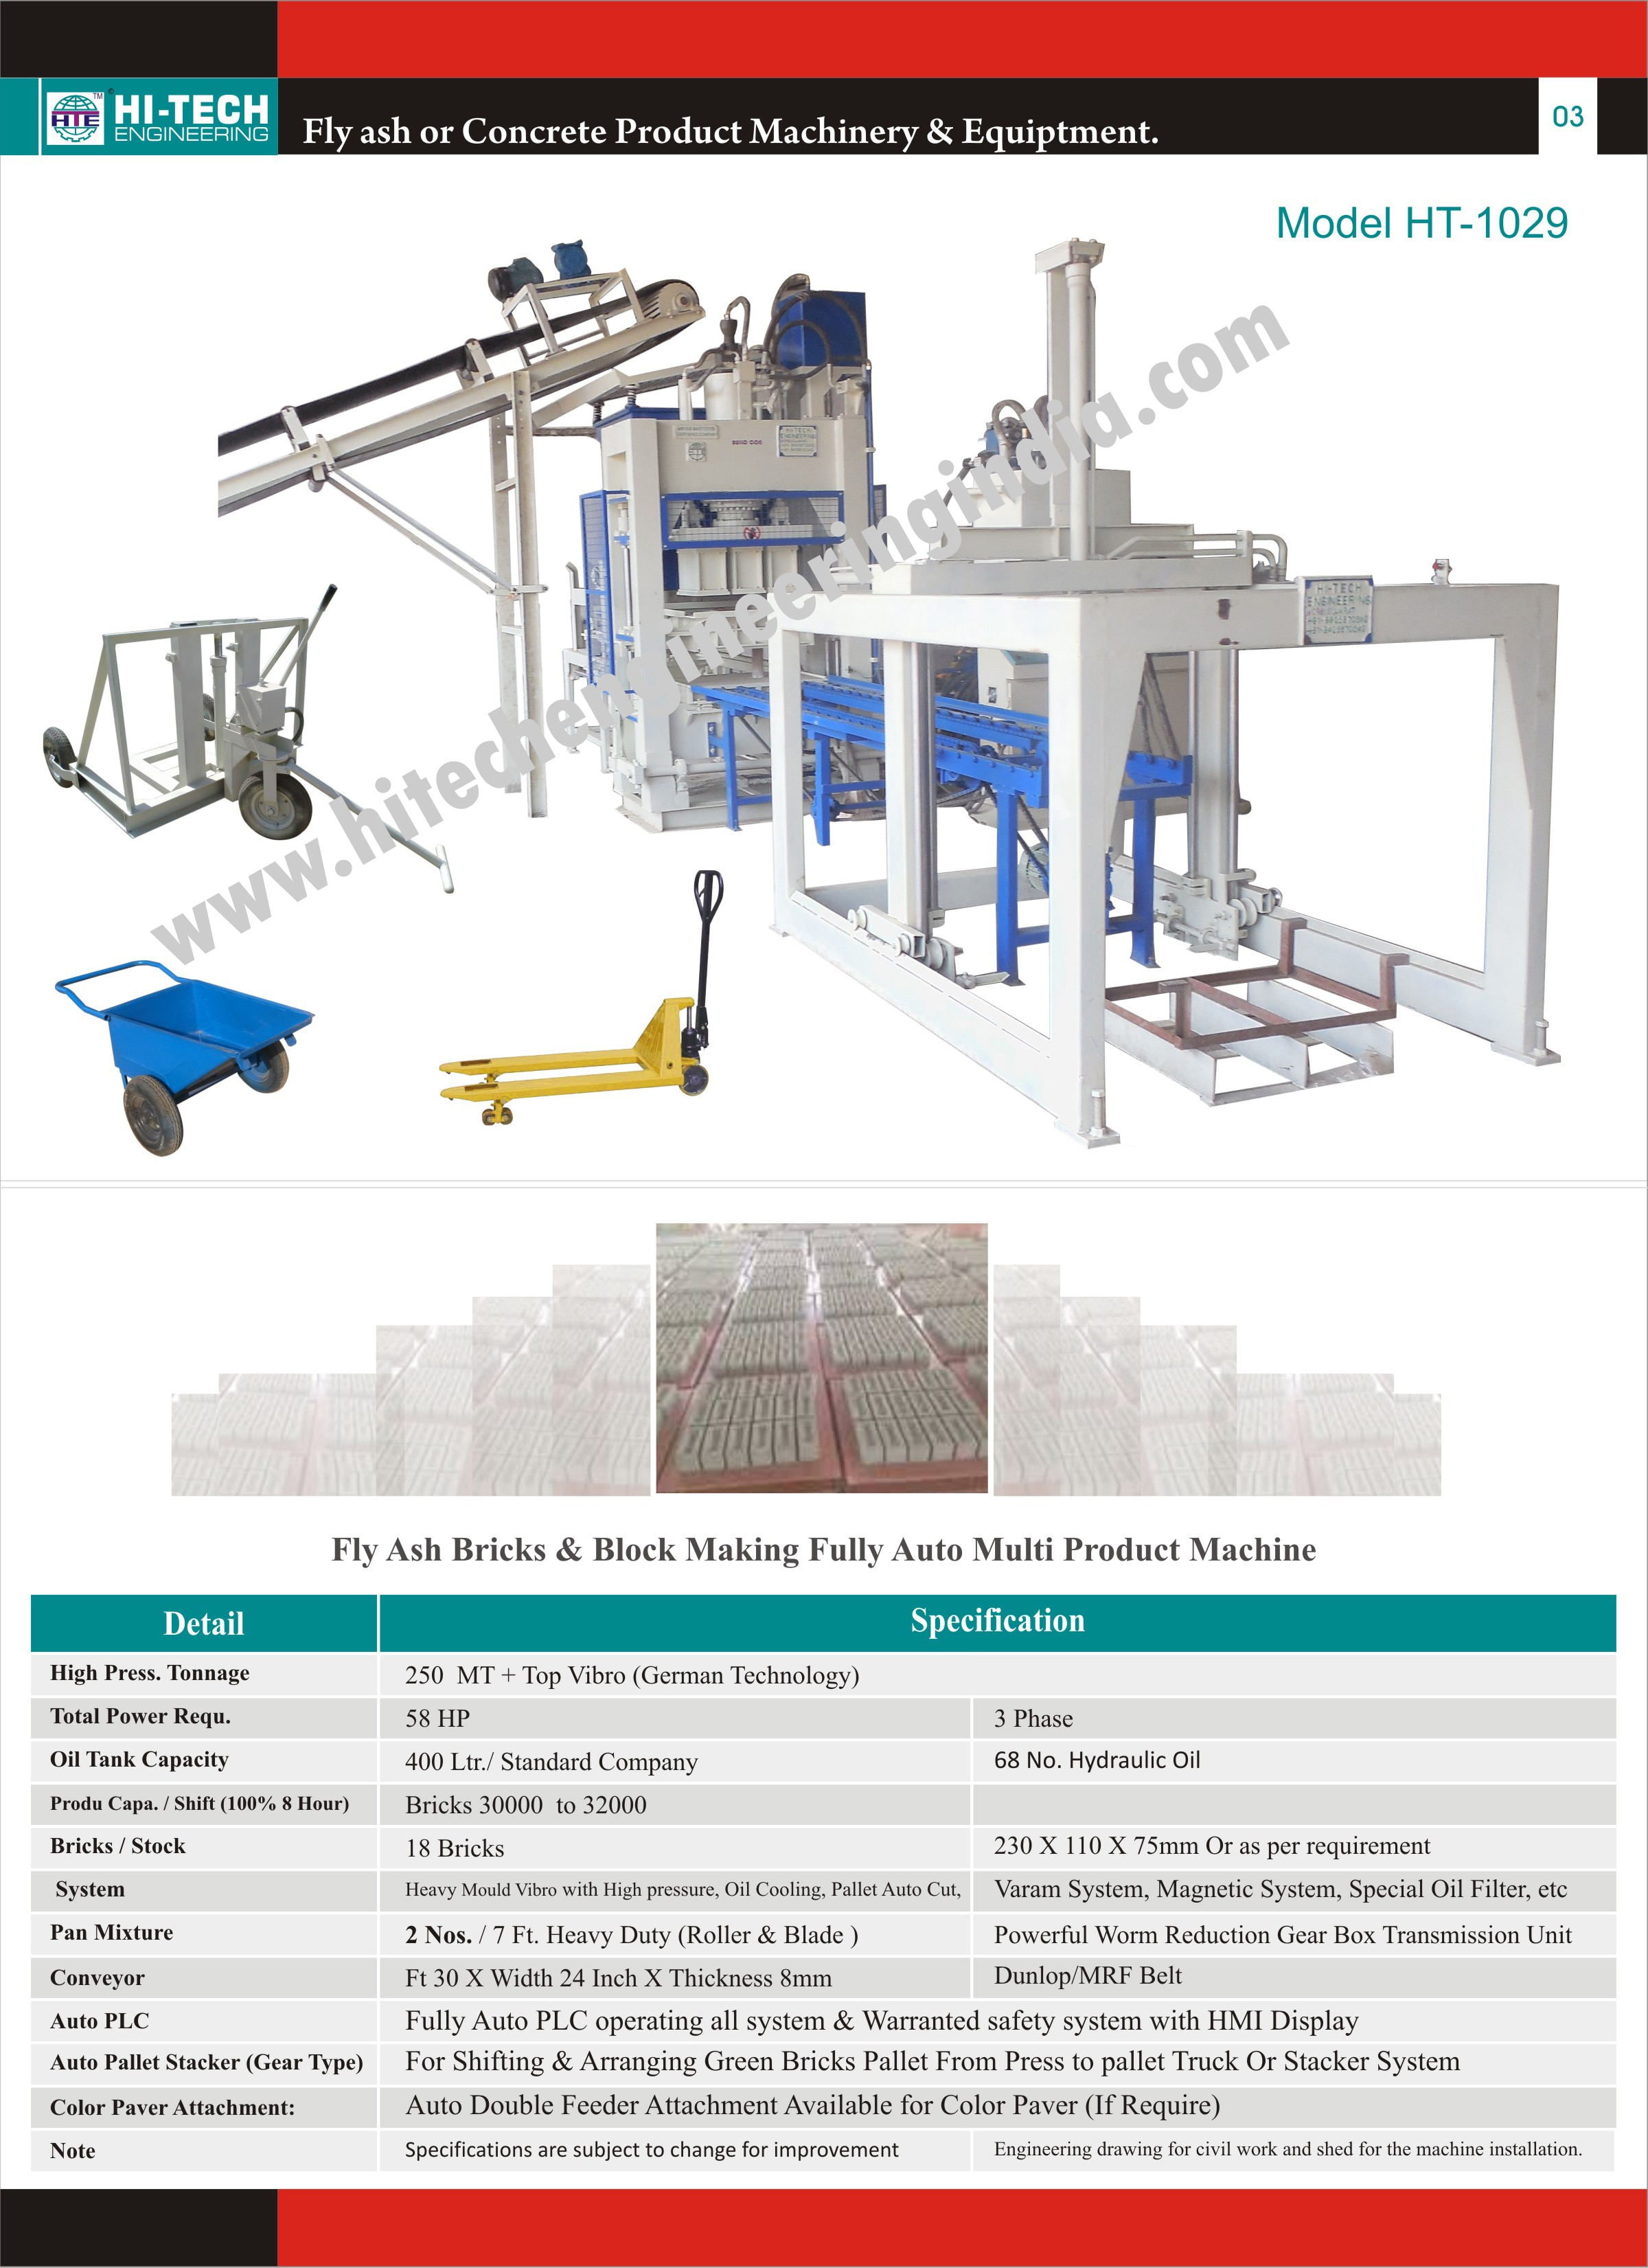 Fully-Automatic-Fly-Ash-Brick-Machine